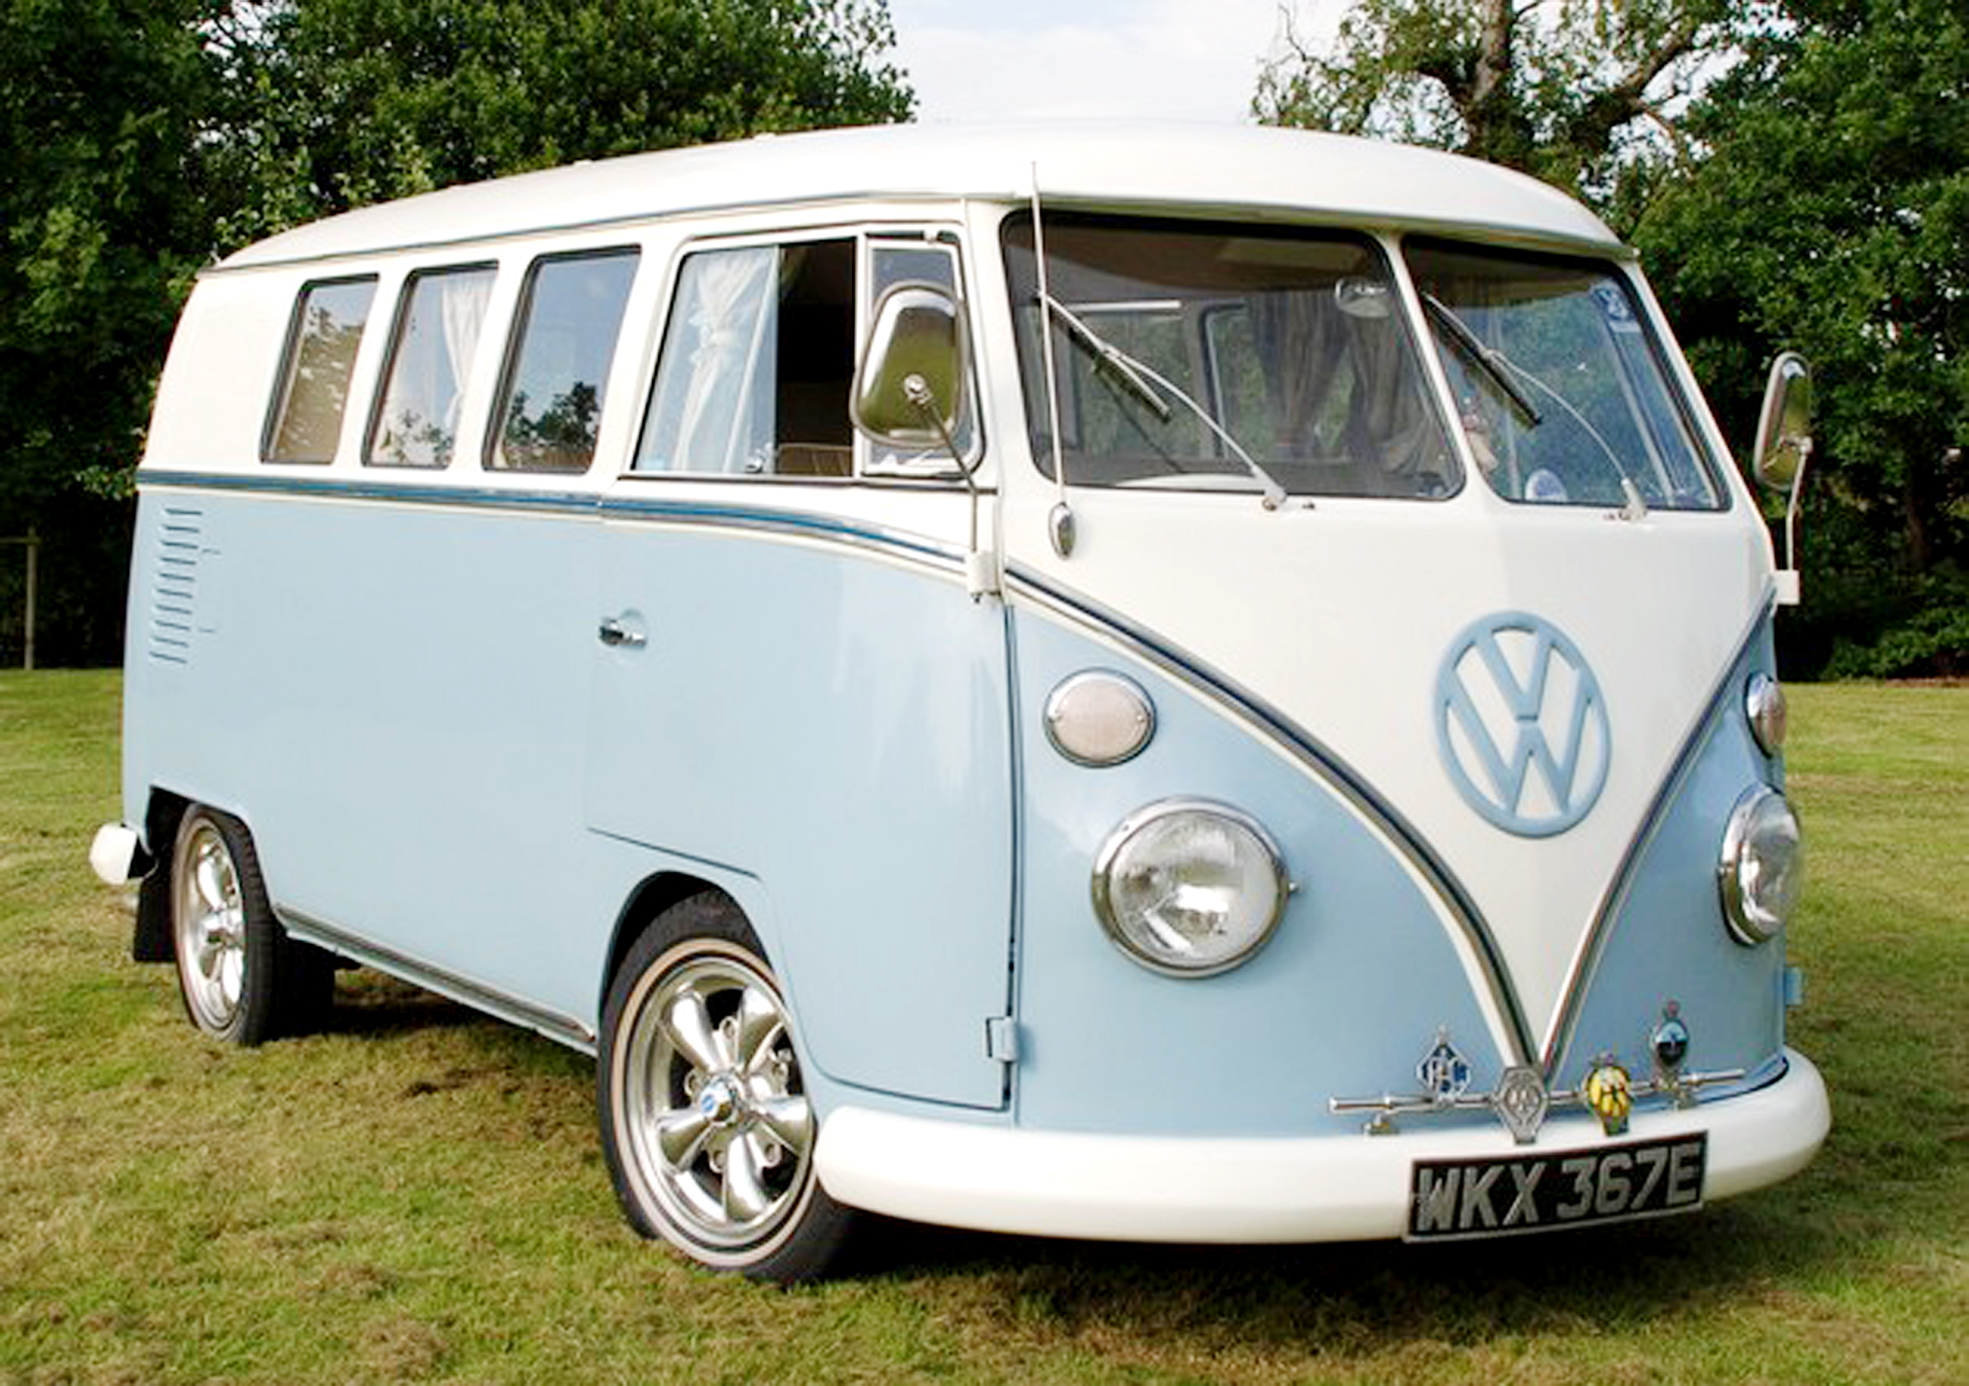 329bf396ca0d4c End of the line for classic VW camper van - but not in Kearsley ...